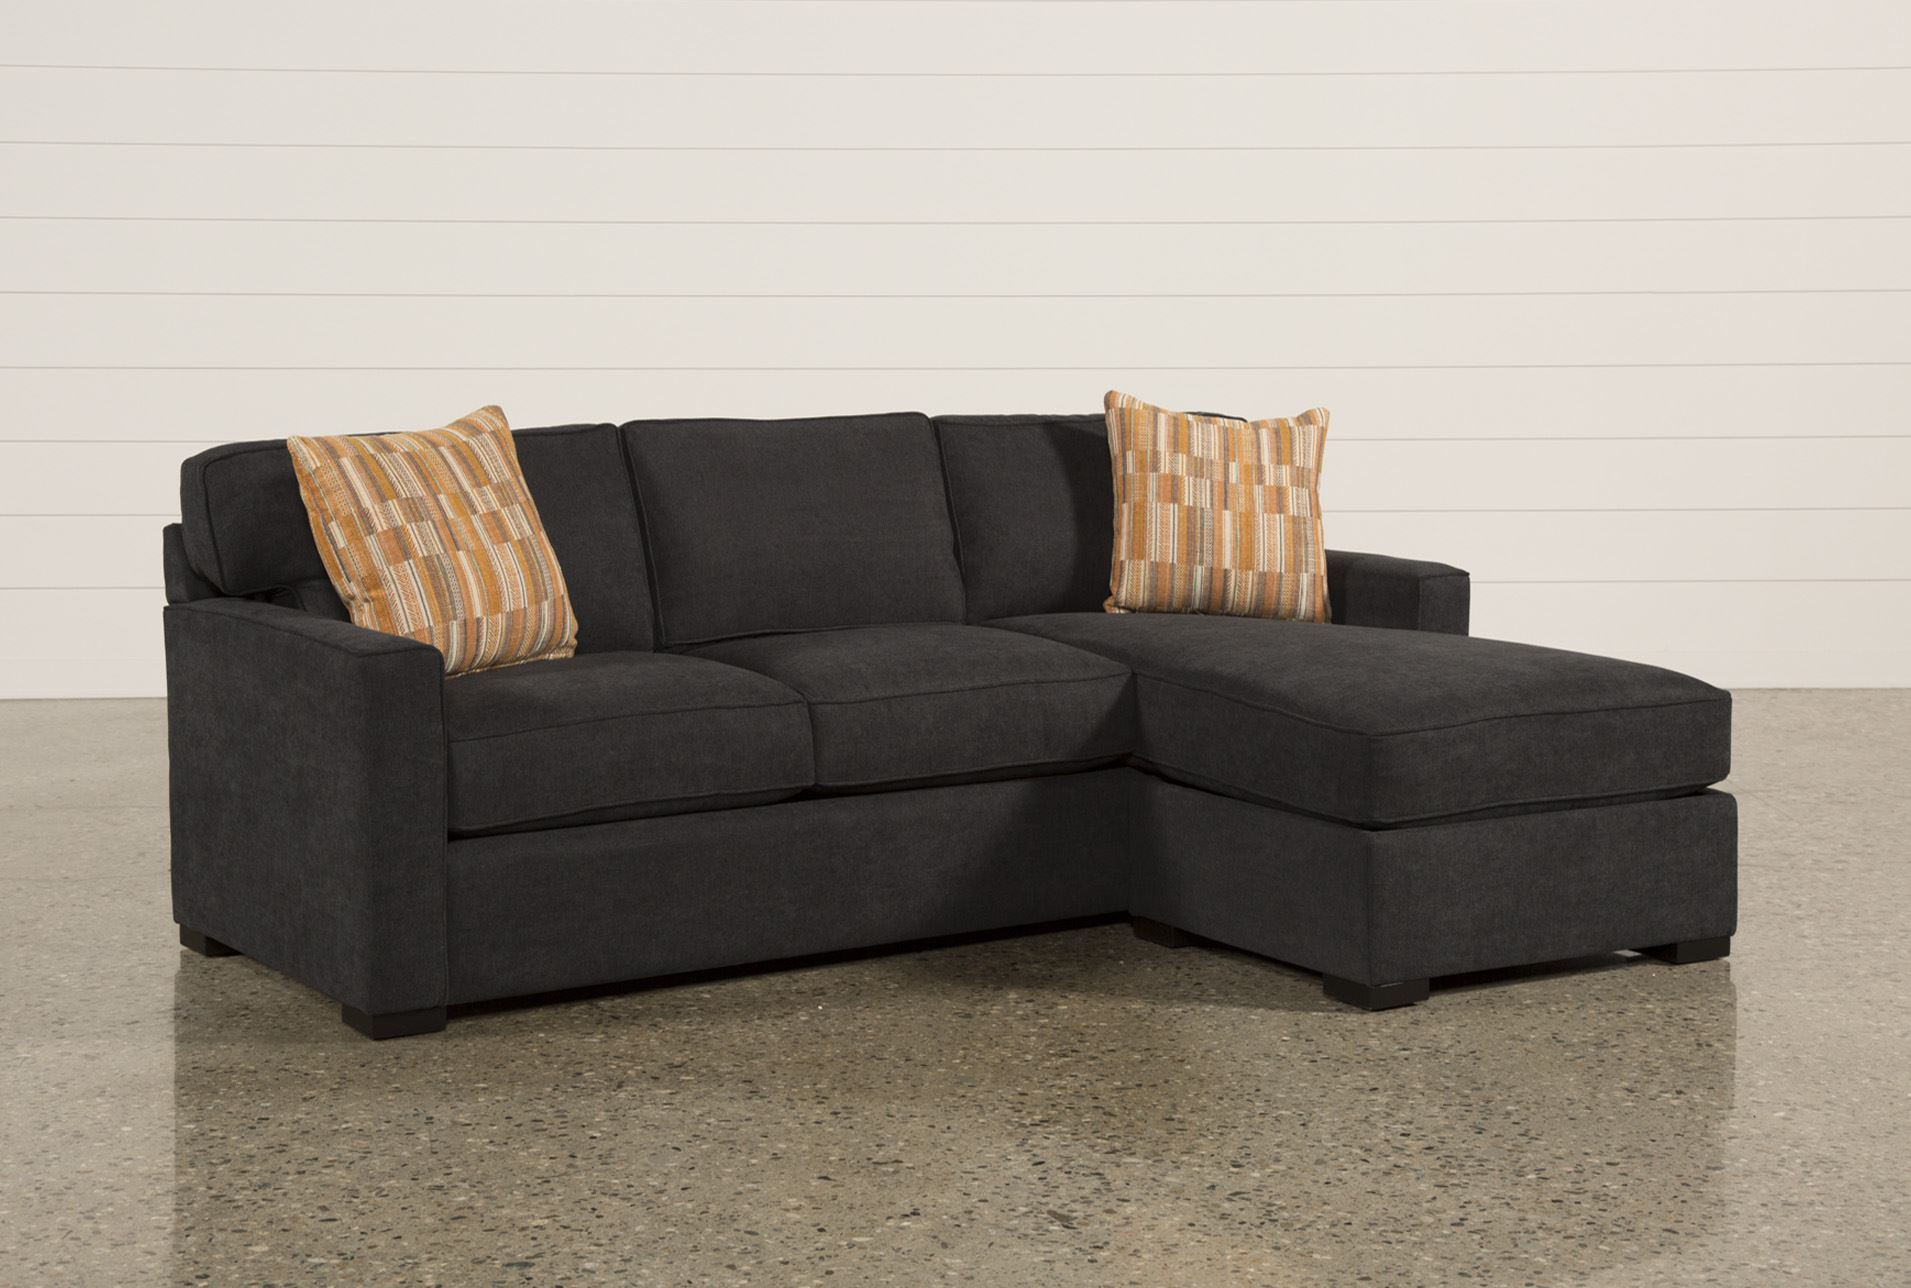 Marvelous Display Product Reviews For KIT TAREN REVERSIBLE SOFA/CHAISE SLEEPER  W/STORAGE OTTOMAN